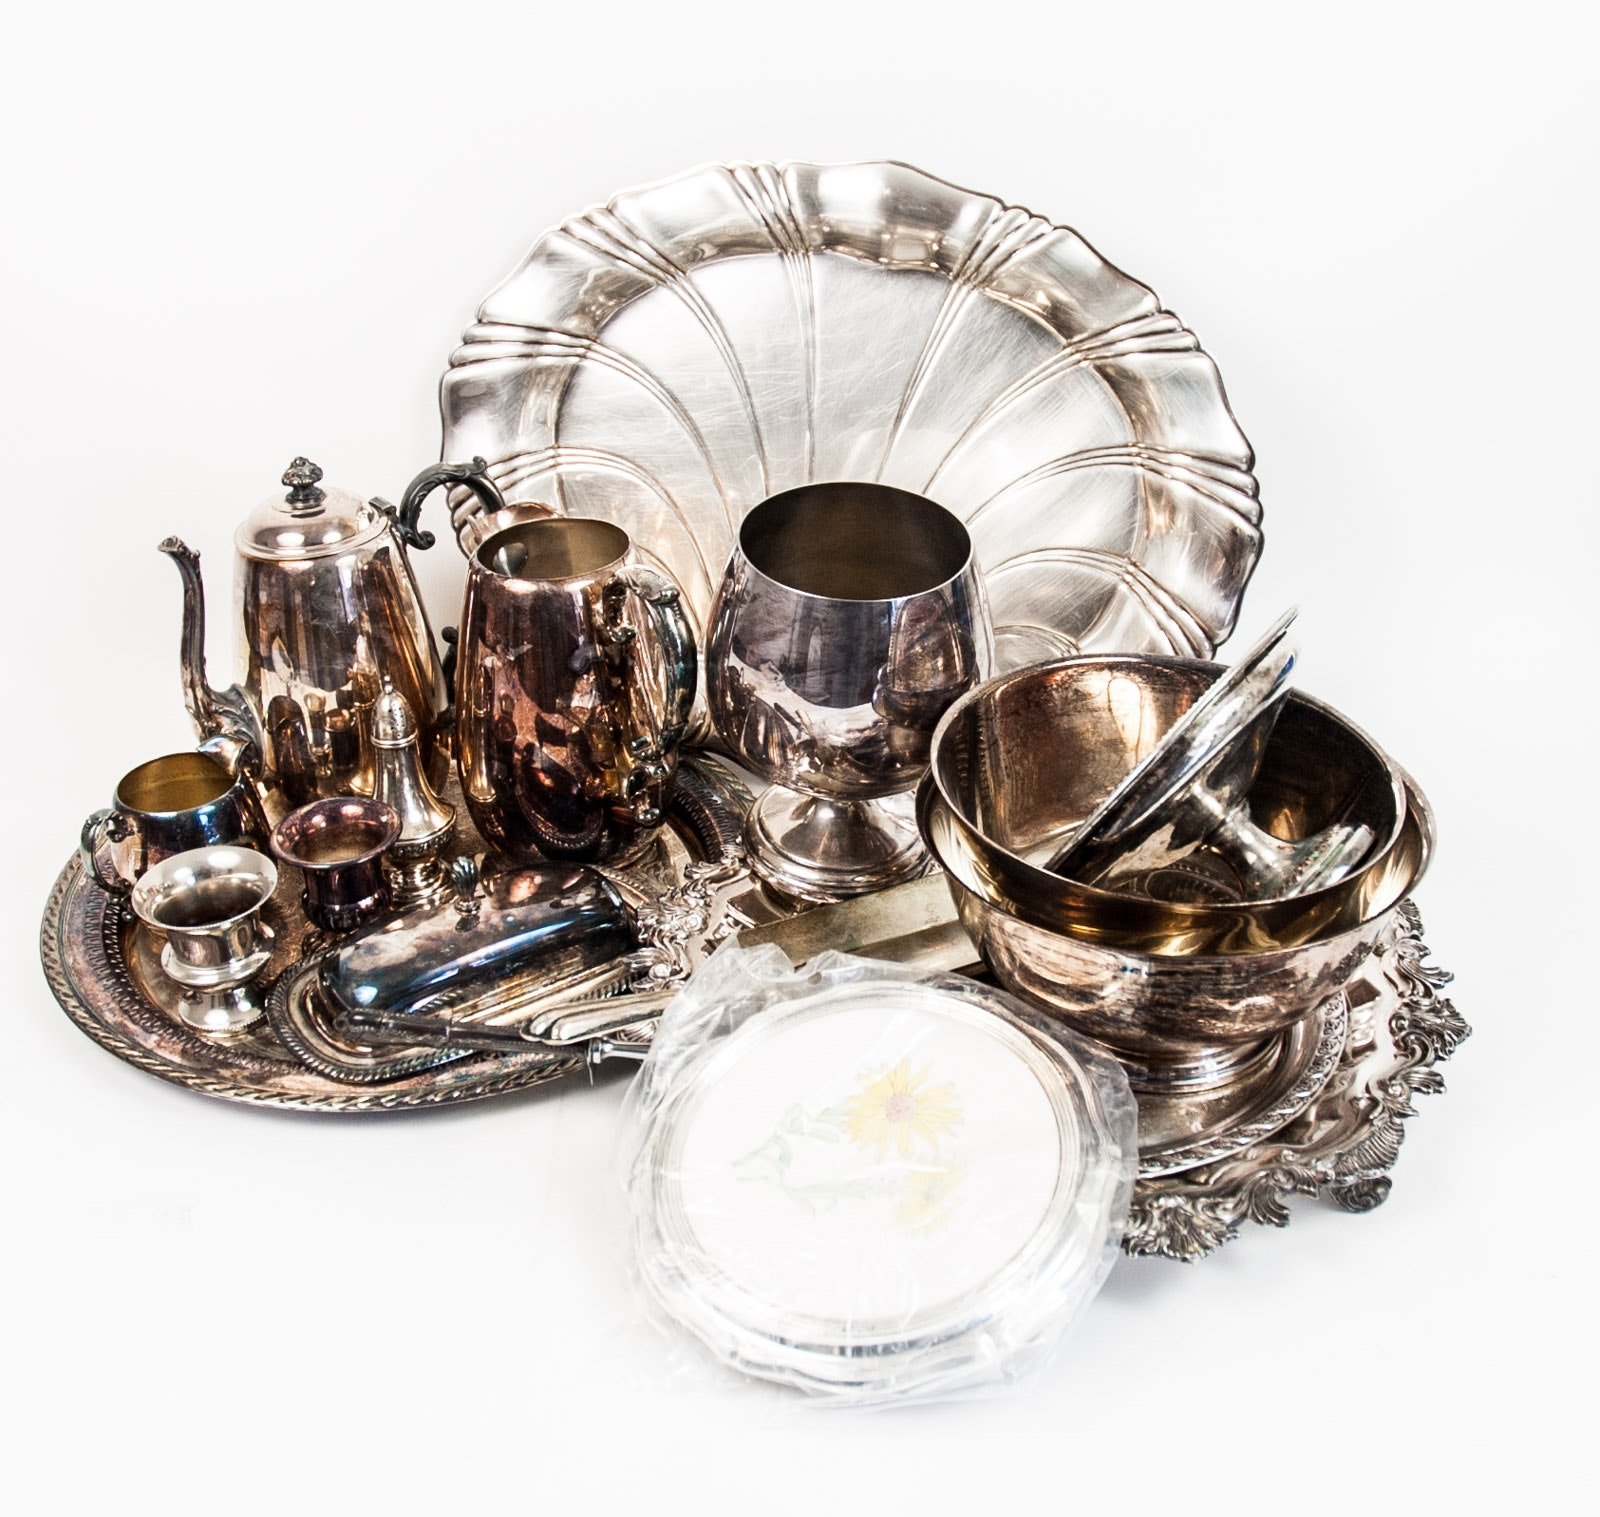 Revere Style Bowls and Other Plated Silver Tableware